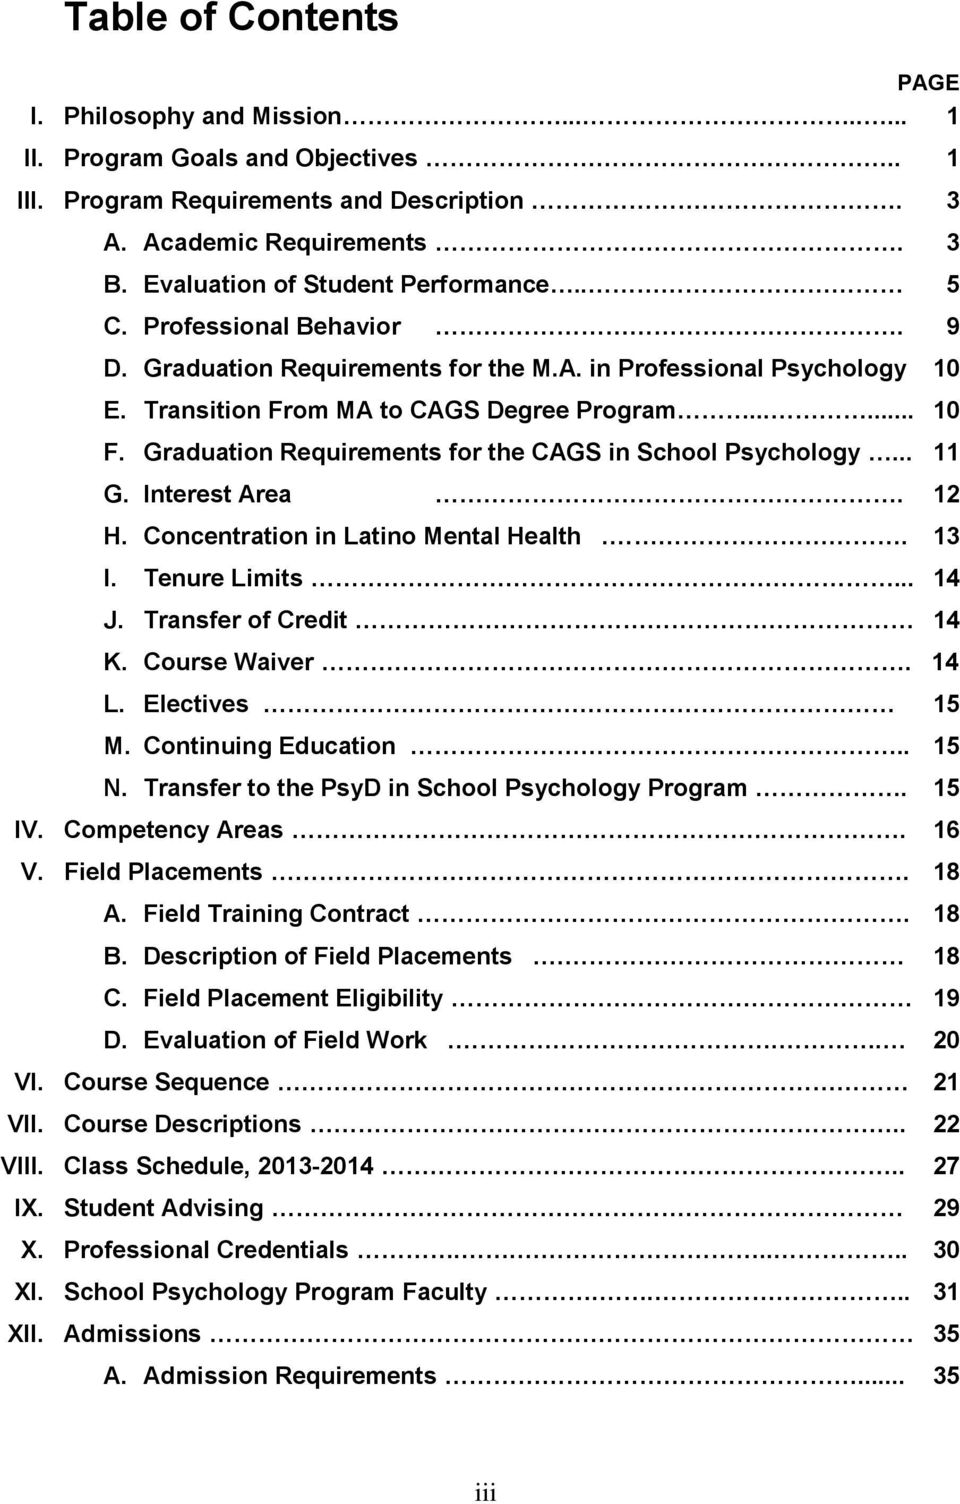 Graduation Requirements for the CAGS in School Psychology... 11 G. Interest Area. 12 H. Concentration in Latino Mental Health.. 13 I. Tenure Limits... 14 J. Transfer of Credit 14 K. Course Waiver.